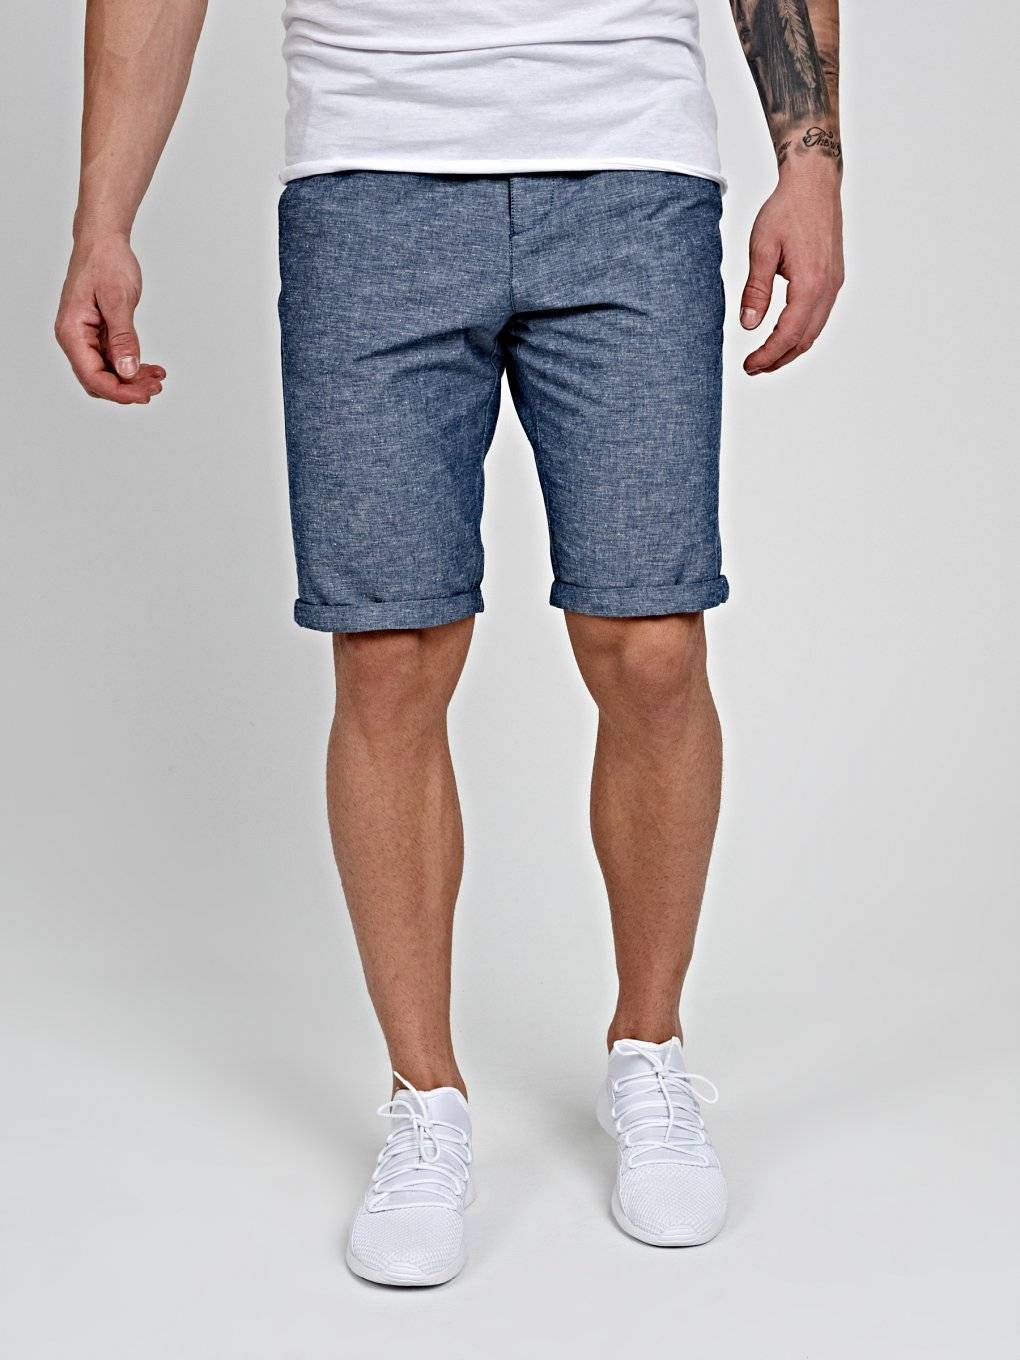 CHINO SHORTS IN LINEN BLEND